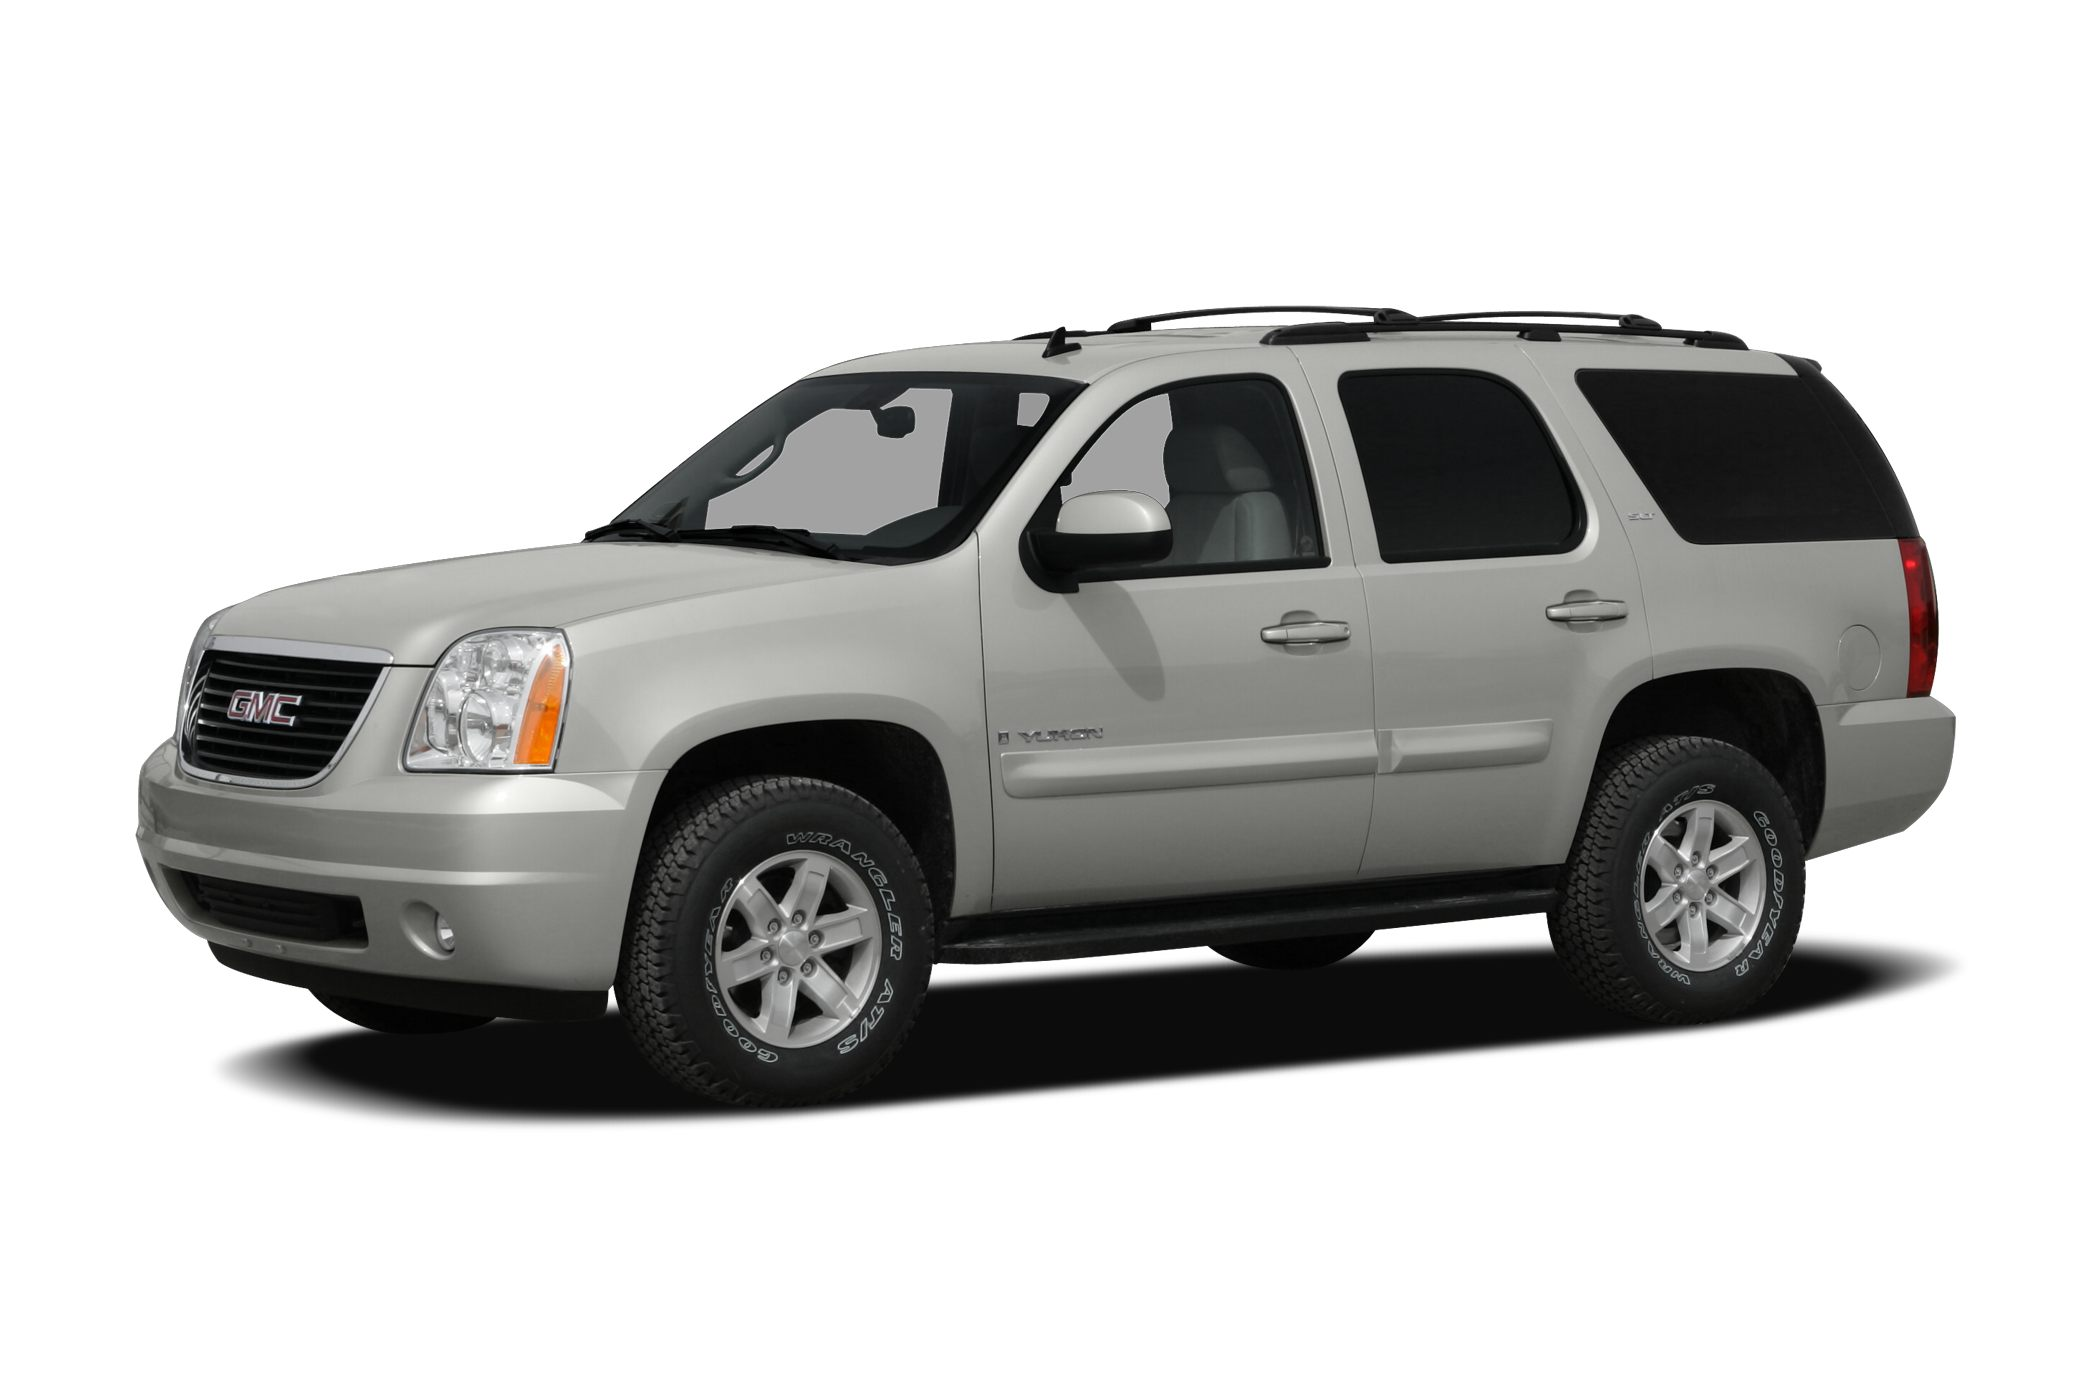 2009 GMC Yukon SLT1 SUV for sale in Owings Mills for $22,994 with 104,631 miles